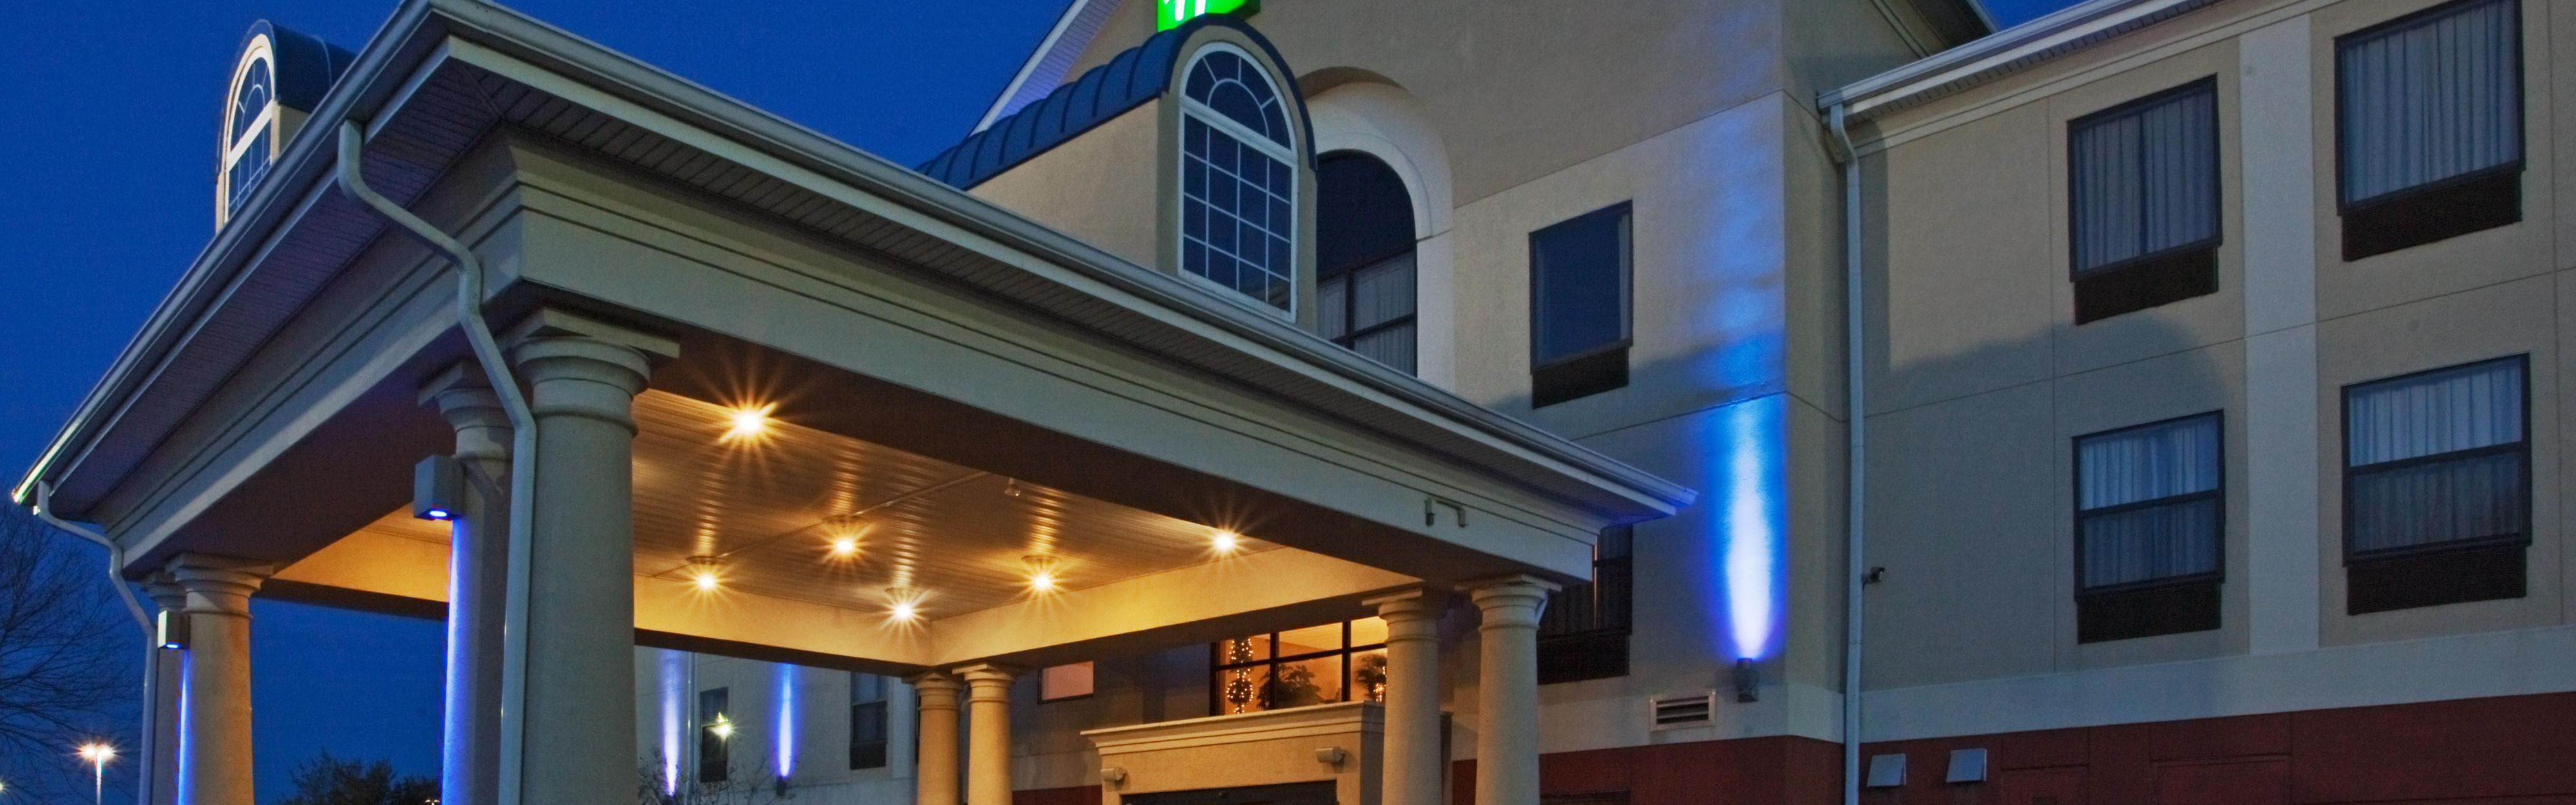 Holiday Inn Express & Suites Laurinburg image 0